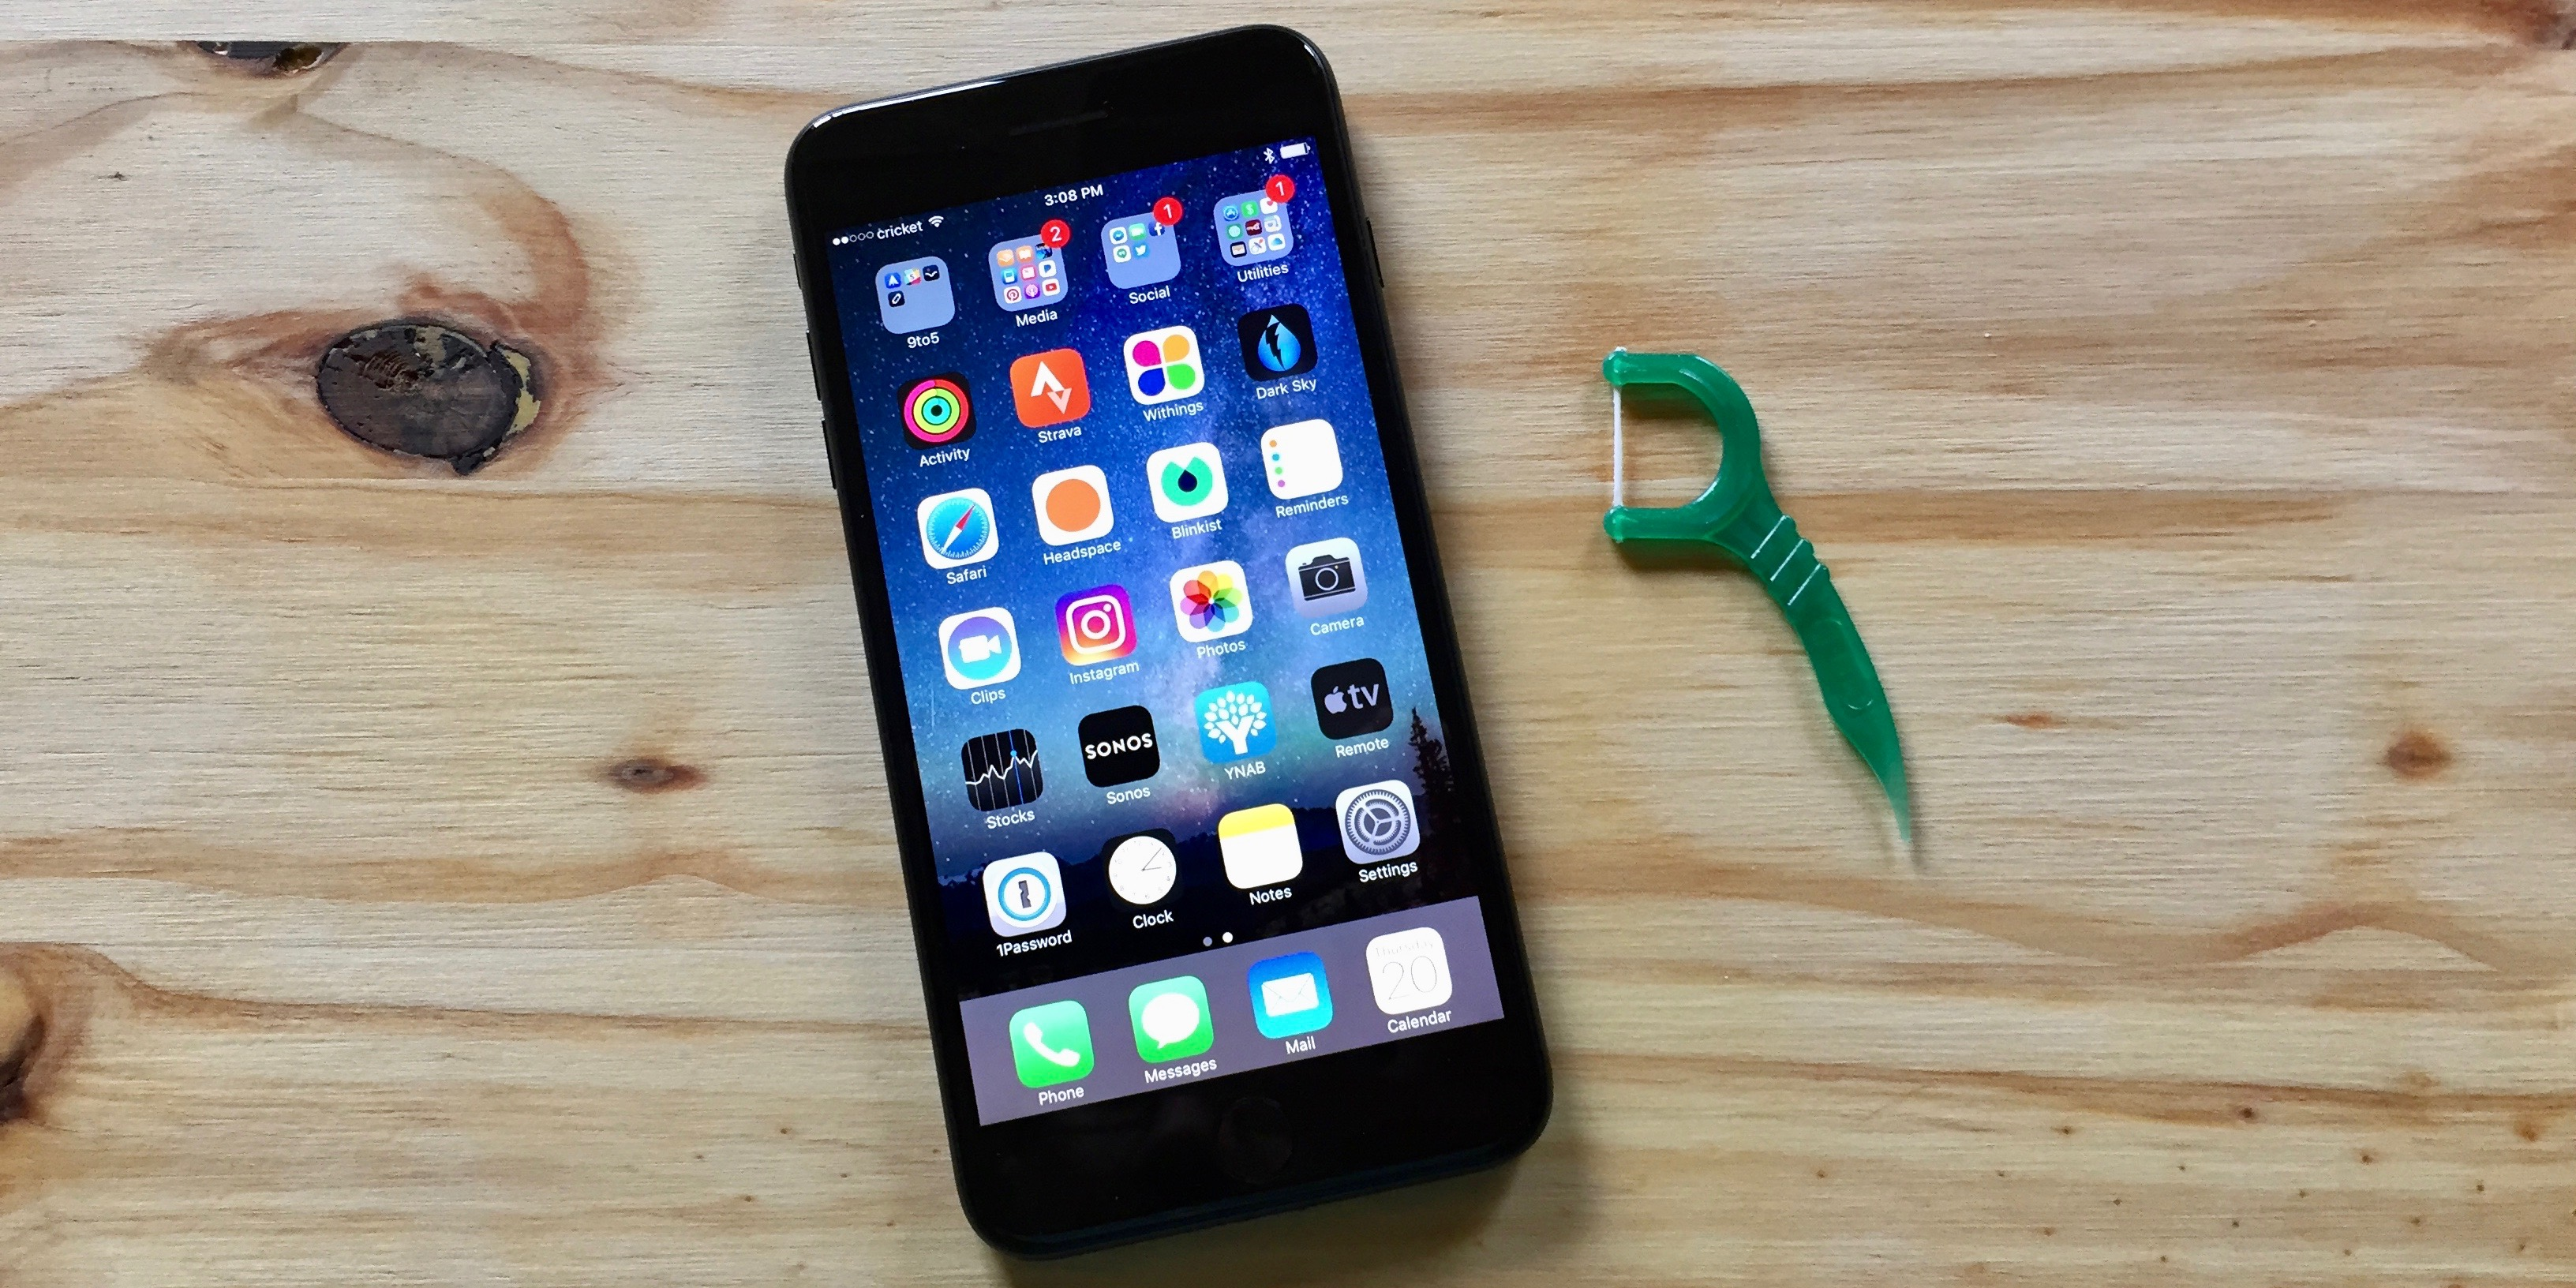 Image of iPhone 7 Plus and plastic dental pick that can be used to clean out a Lightning port